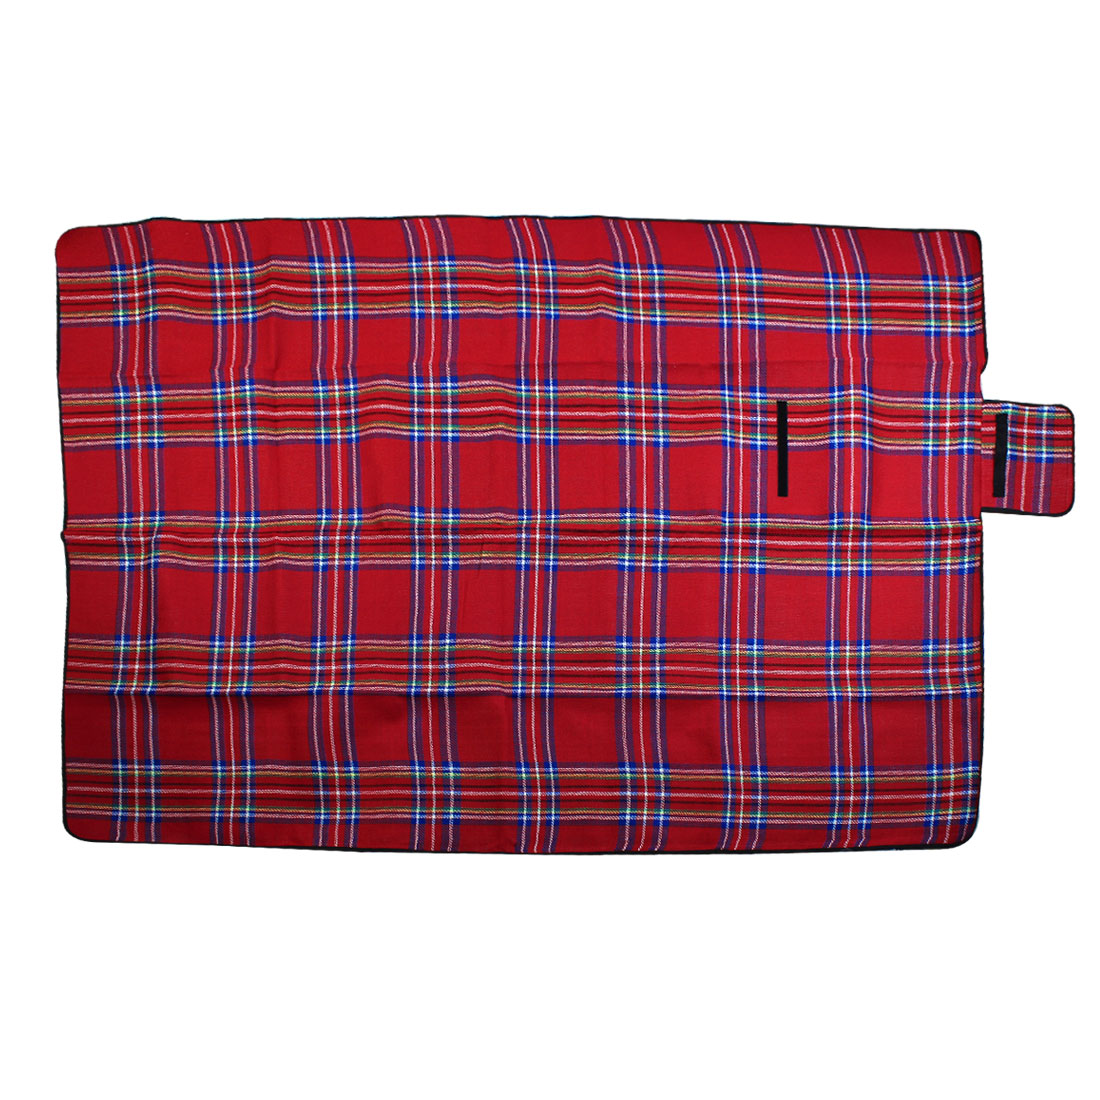 Portable Cashmere Plaid Pattern Waterproof Camping Picnic Mat Matress 200cm x150cm Red